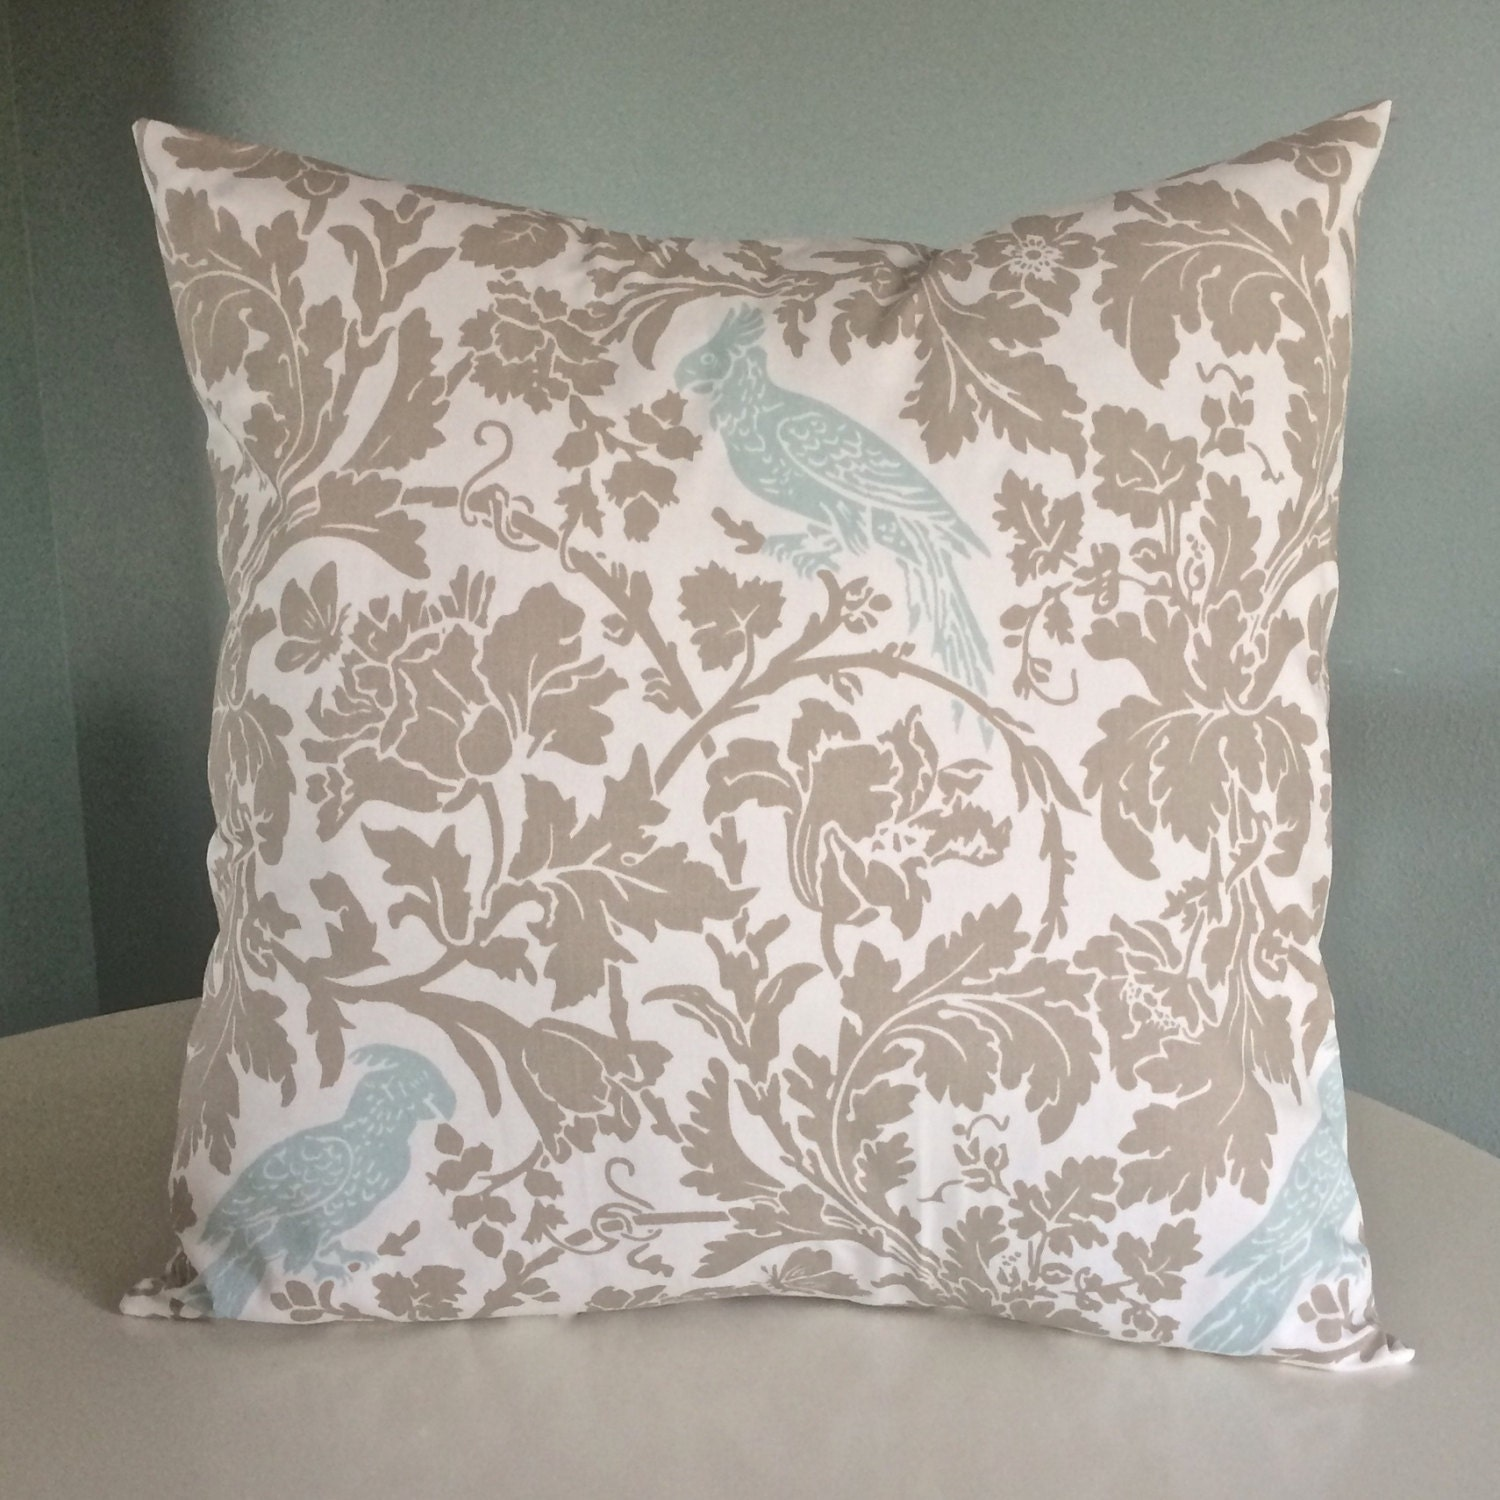 Throw Pillow Euro Sham : 24x24 Decorative Euro Pillow Sham READY TO SHIP